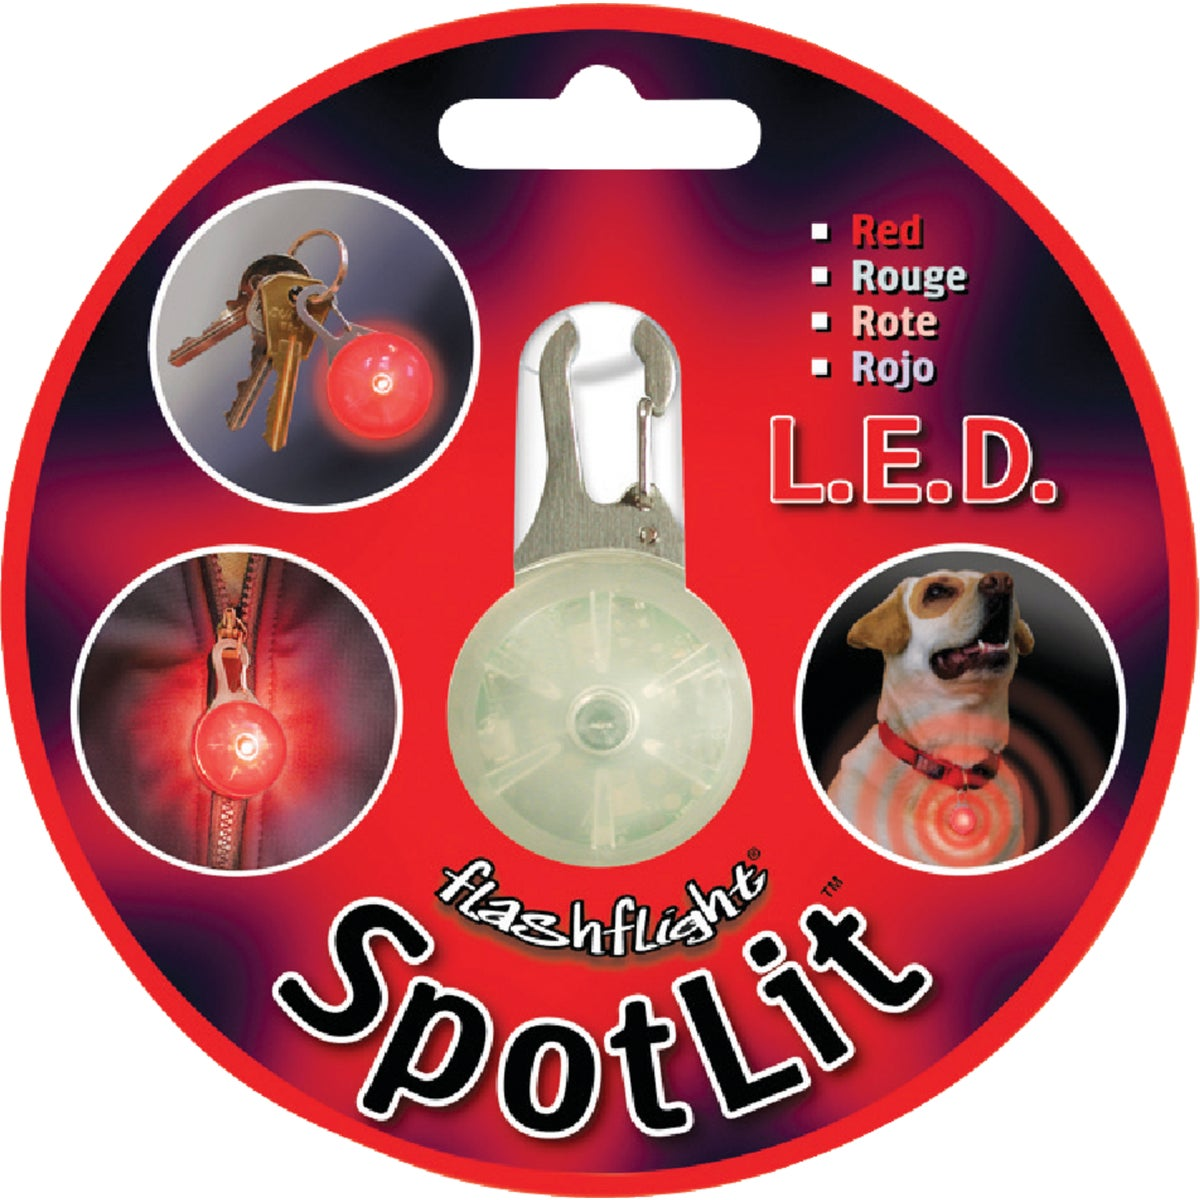 RED SPOTLIT - SLG-03-10 by Nite Ize   Rcp